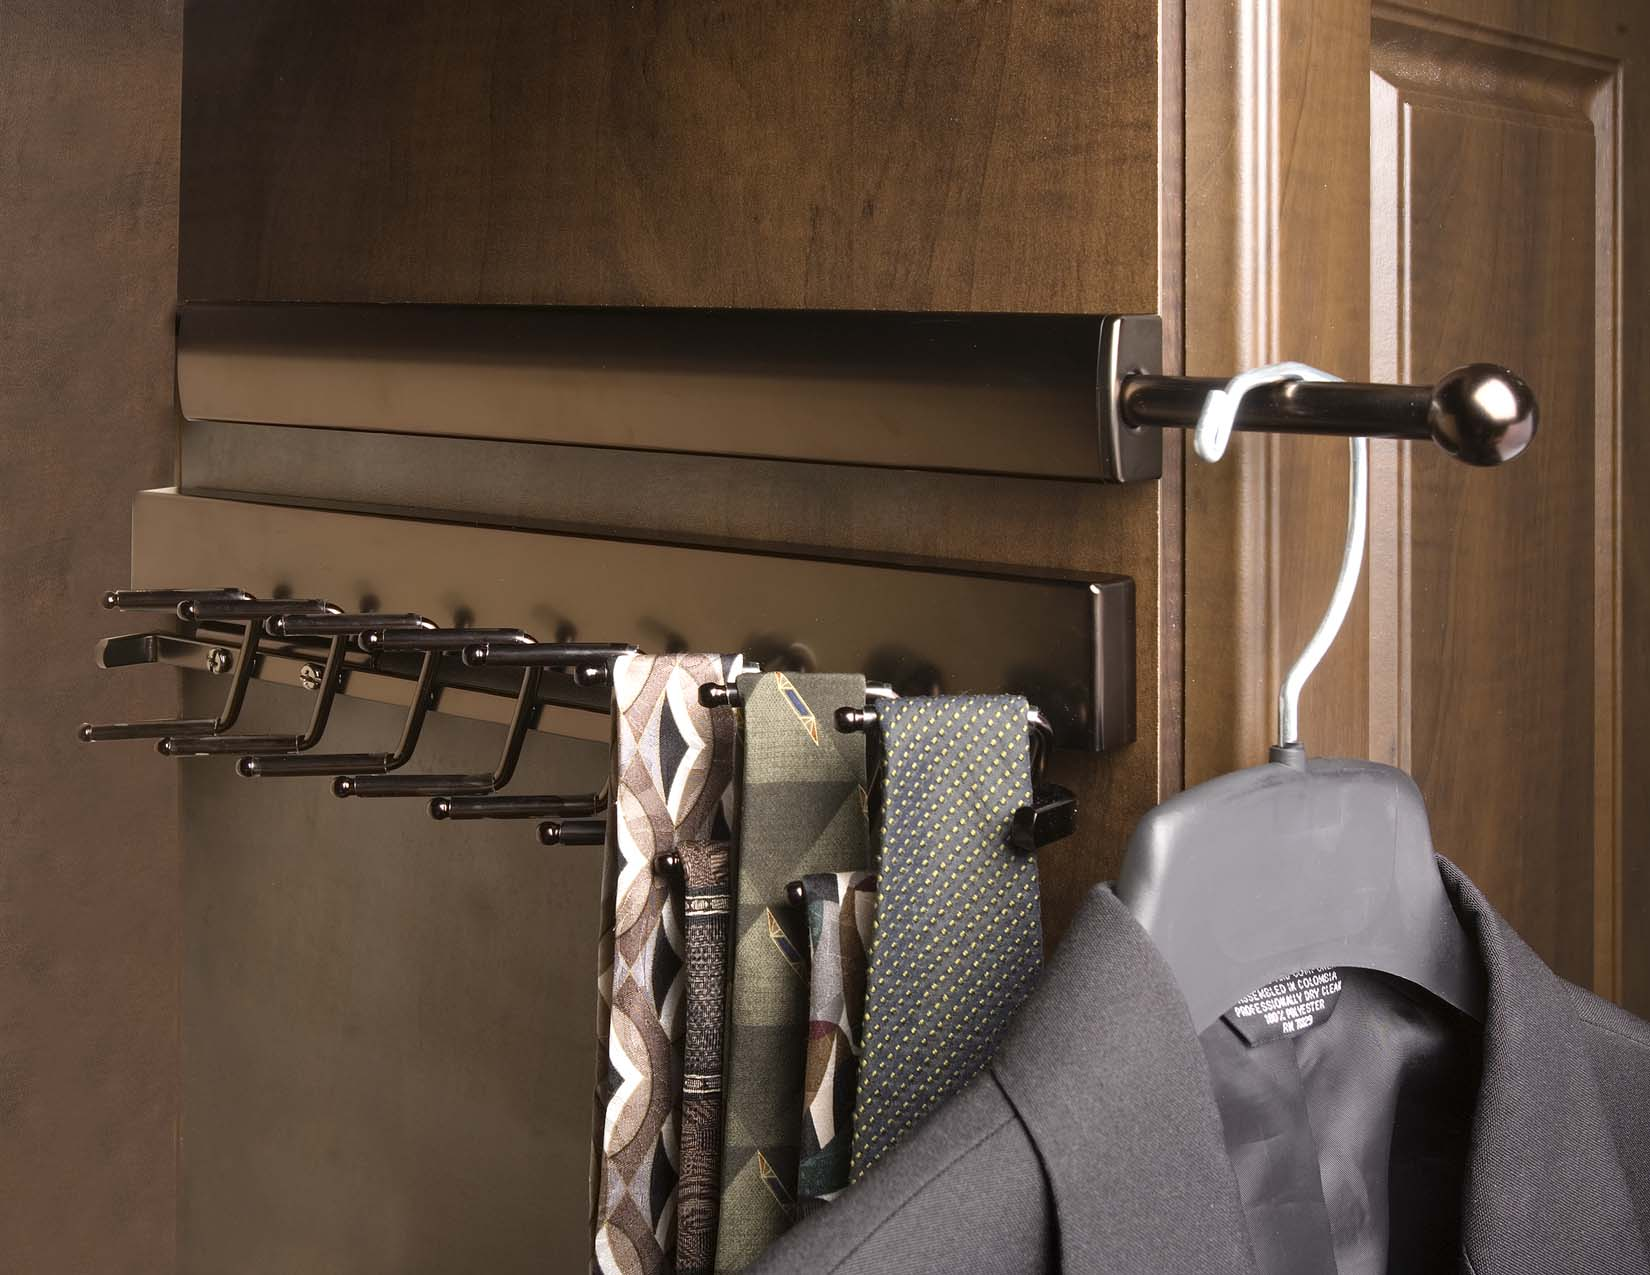 Superieur Oil Rubbed Bronze Valet Rod And Tie Rack With Ties And Jacket